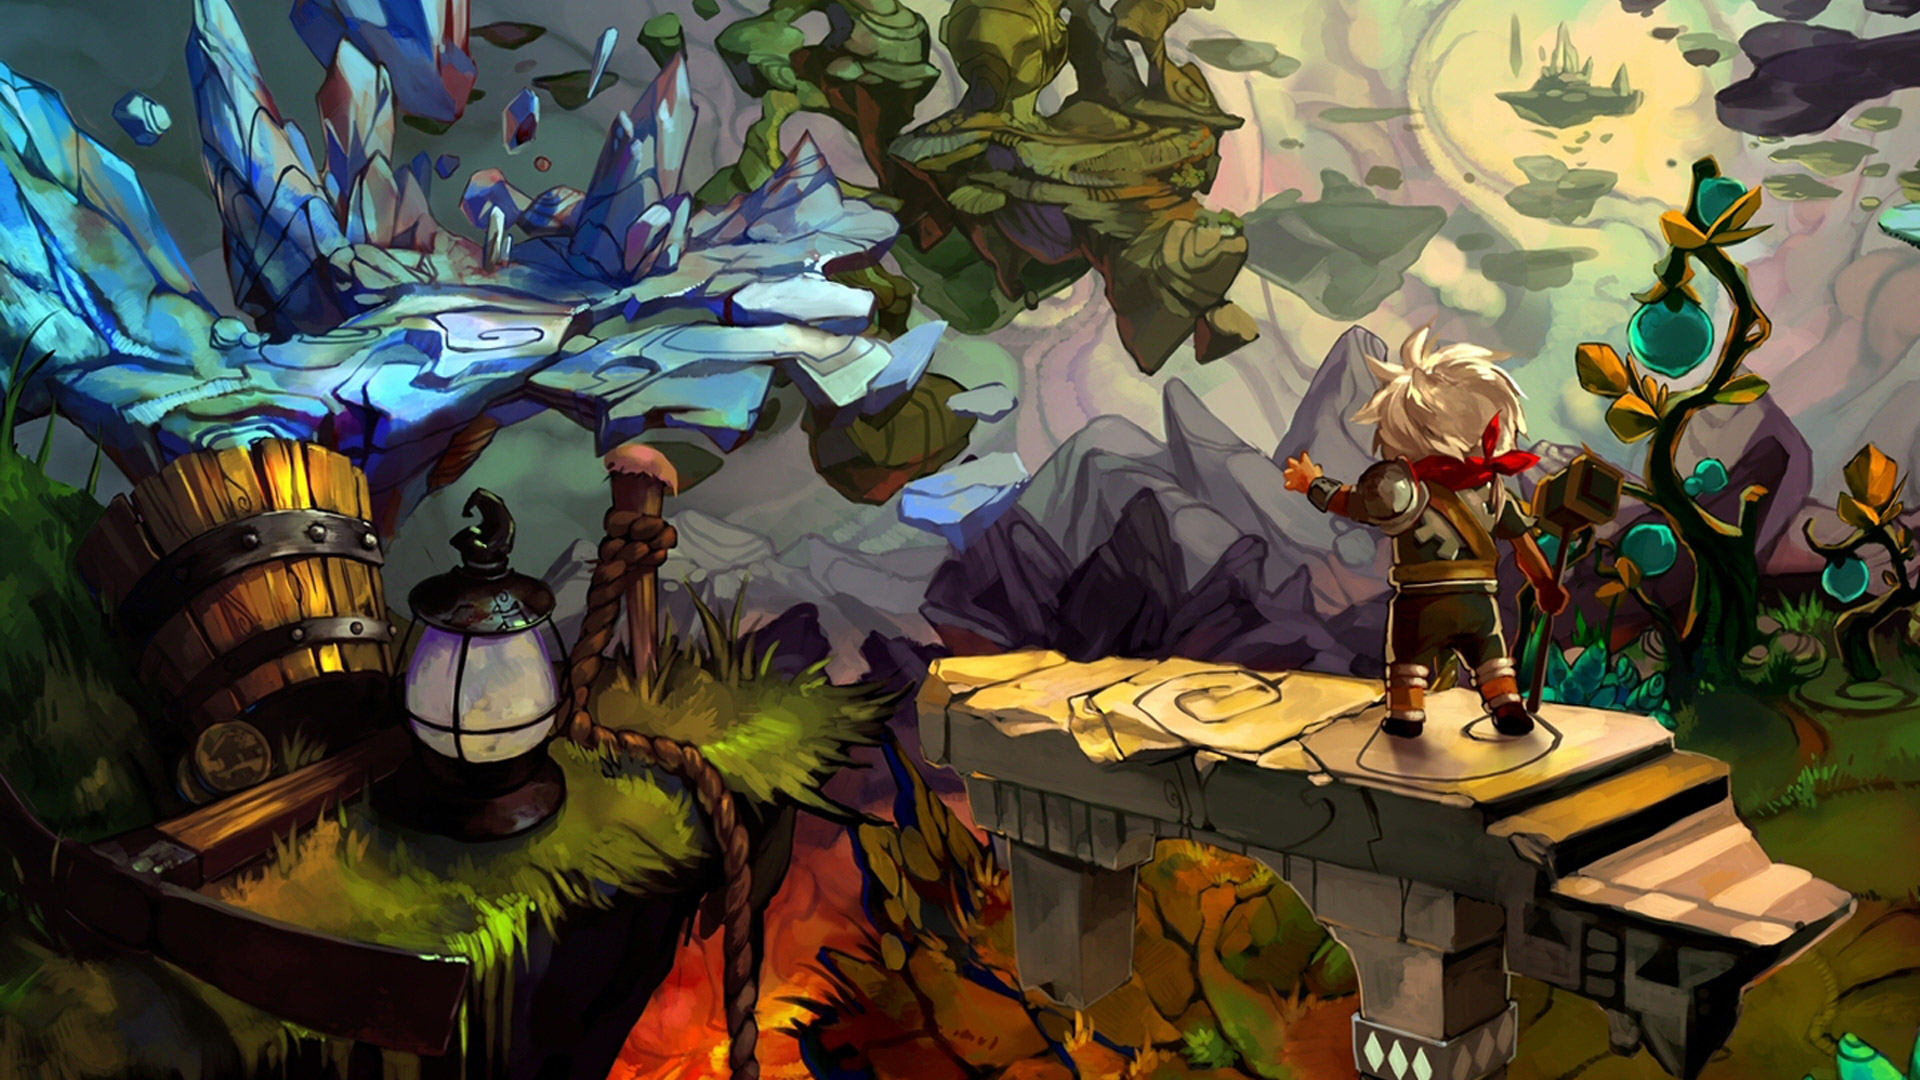 Bastion Wallpaper in 1920x1080